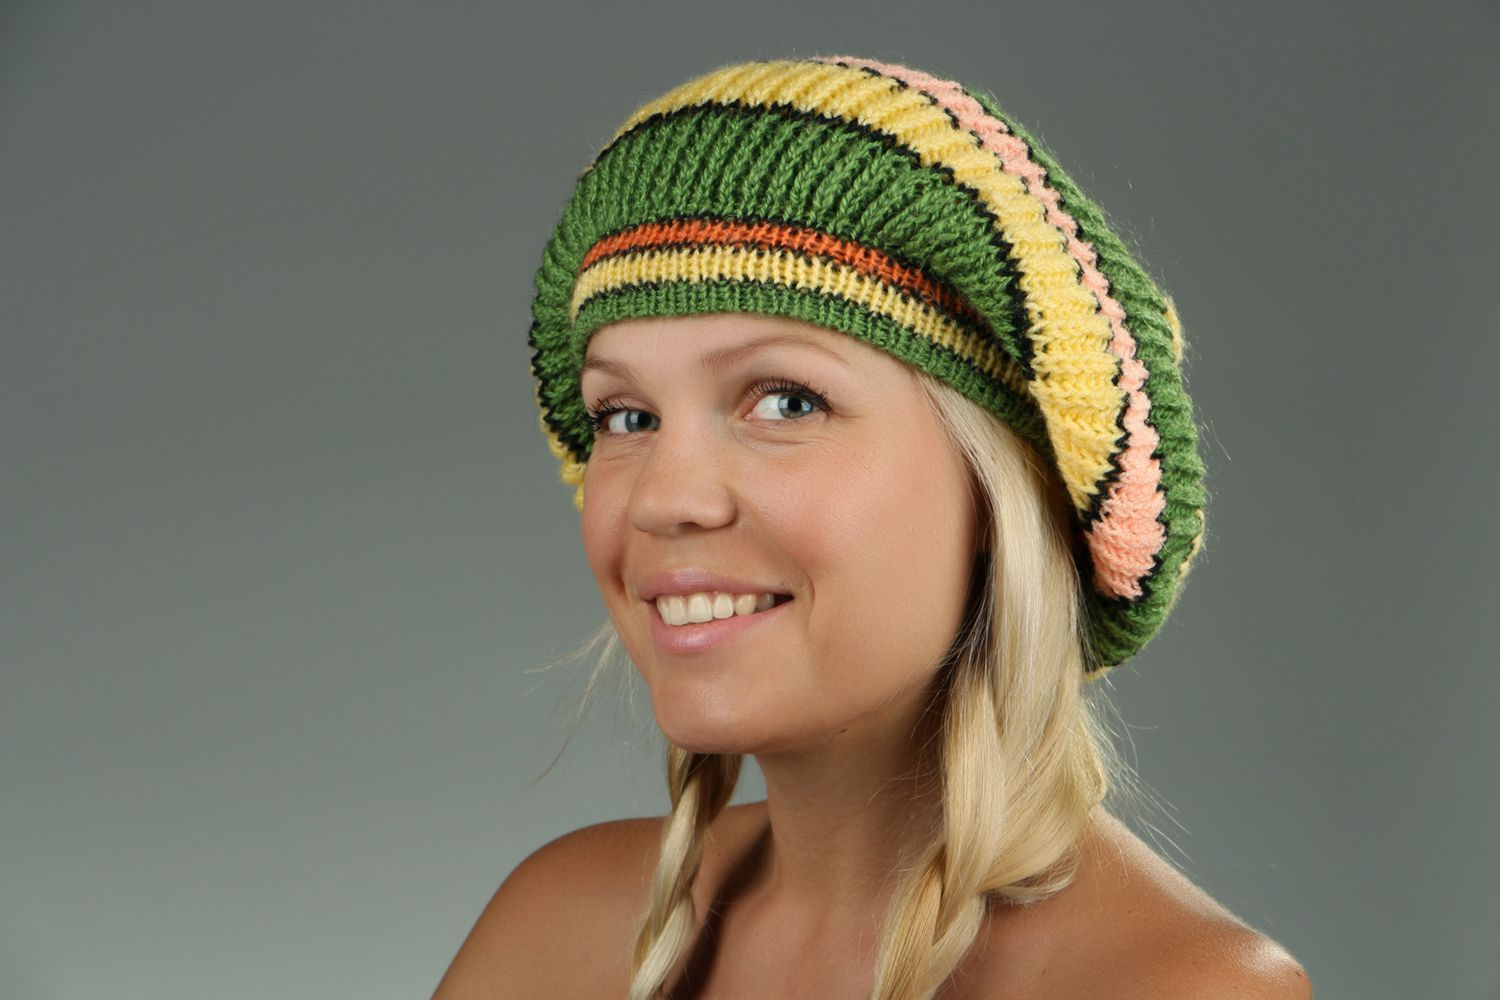 headwear American knitted green & yellow beret - MADEheart.com